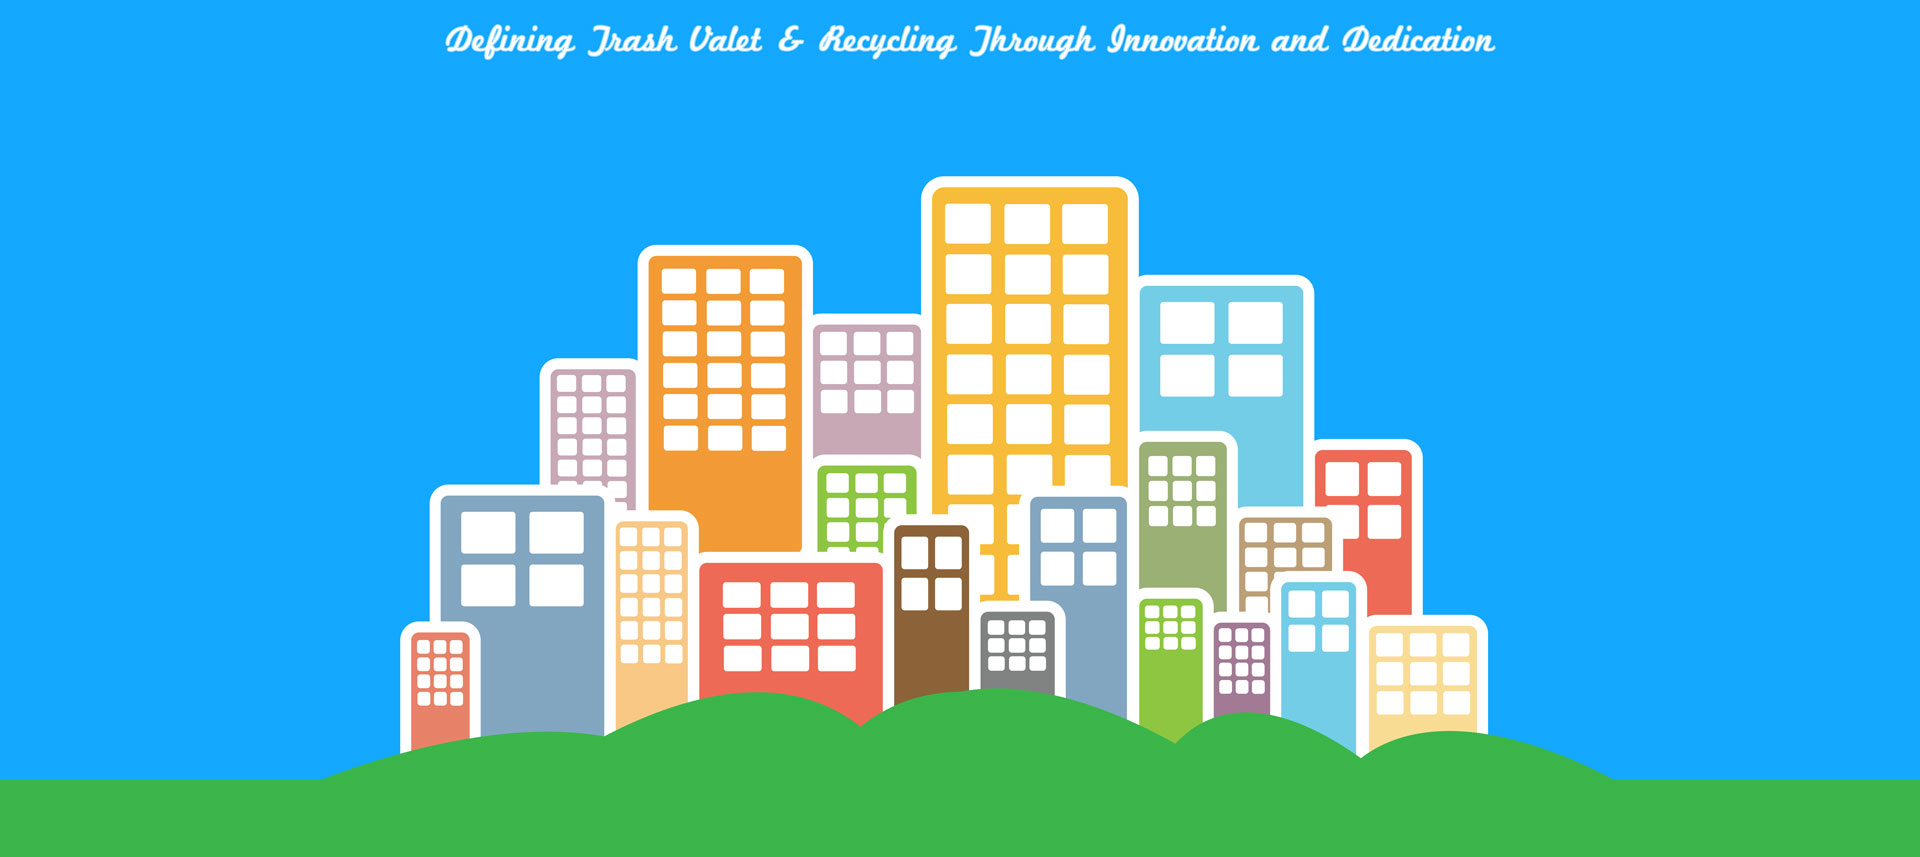 """A cityscape illustration with depicting the WSI Slogan """"Defining Trash Valet & Recycling Through Innovation and Dedication"""""""